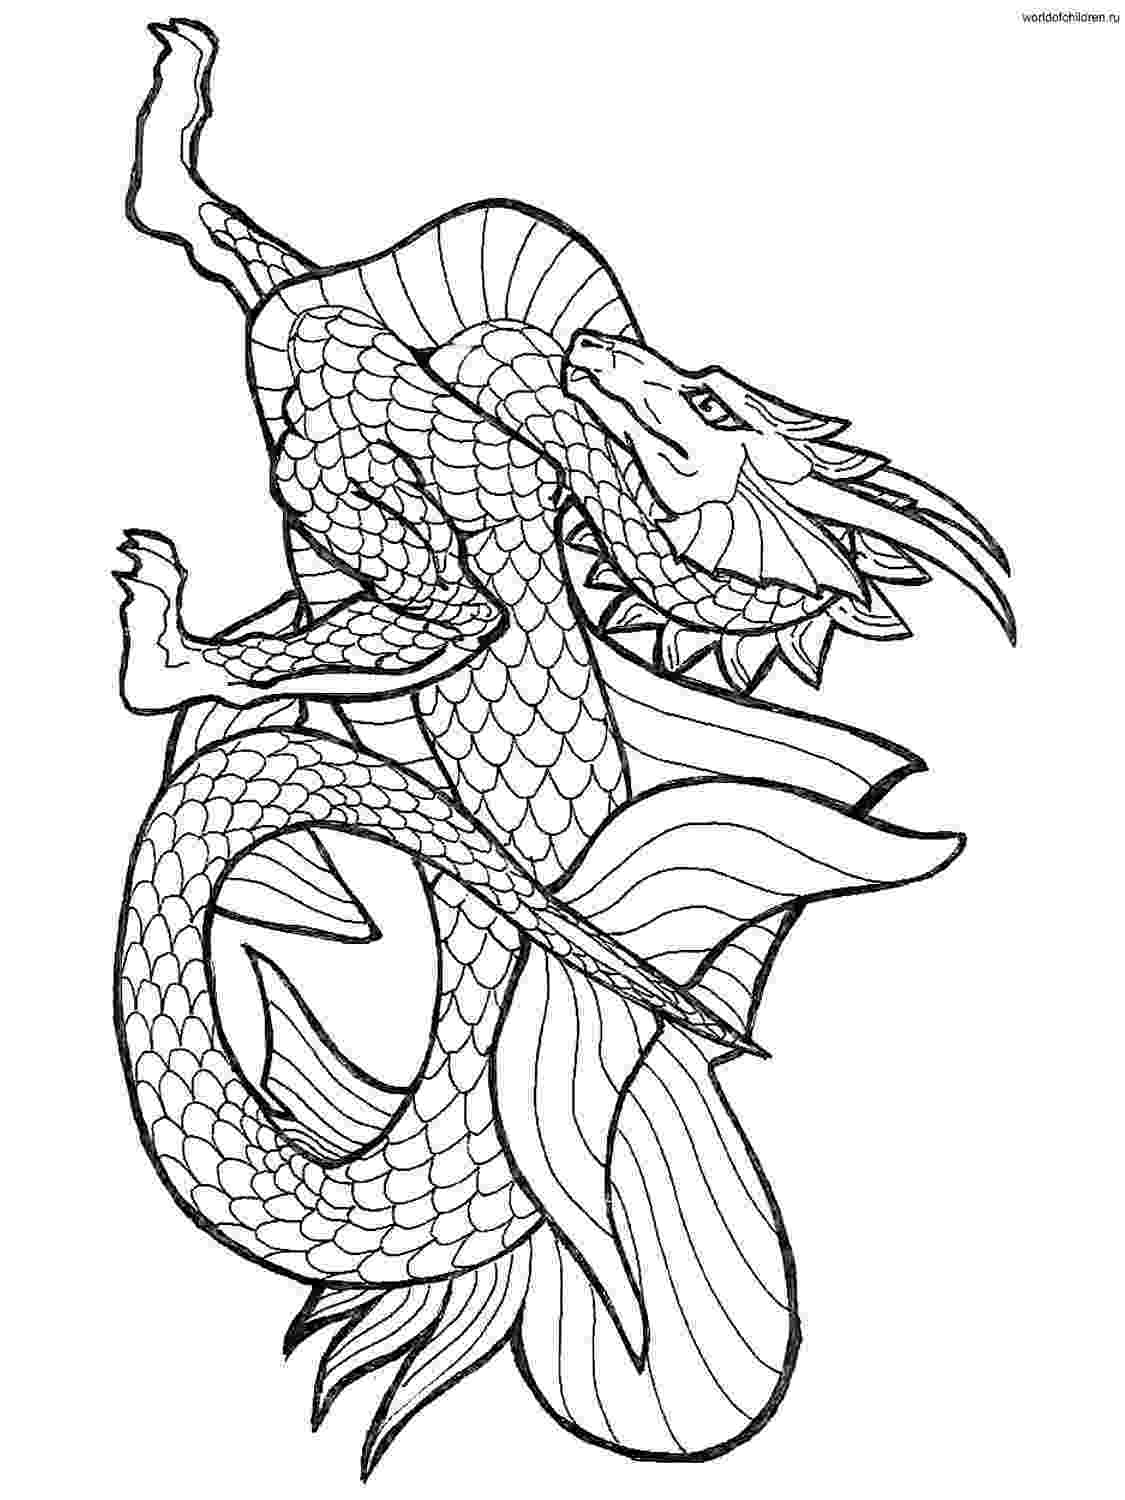 dragon coloring pages to print free printable chinese dragon coloring pages for kids pages dragon to coloring print